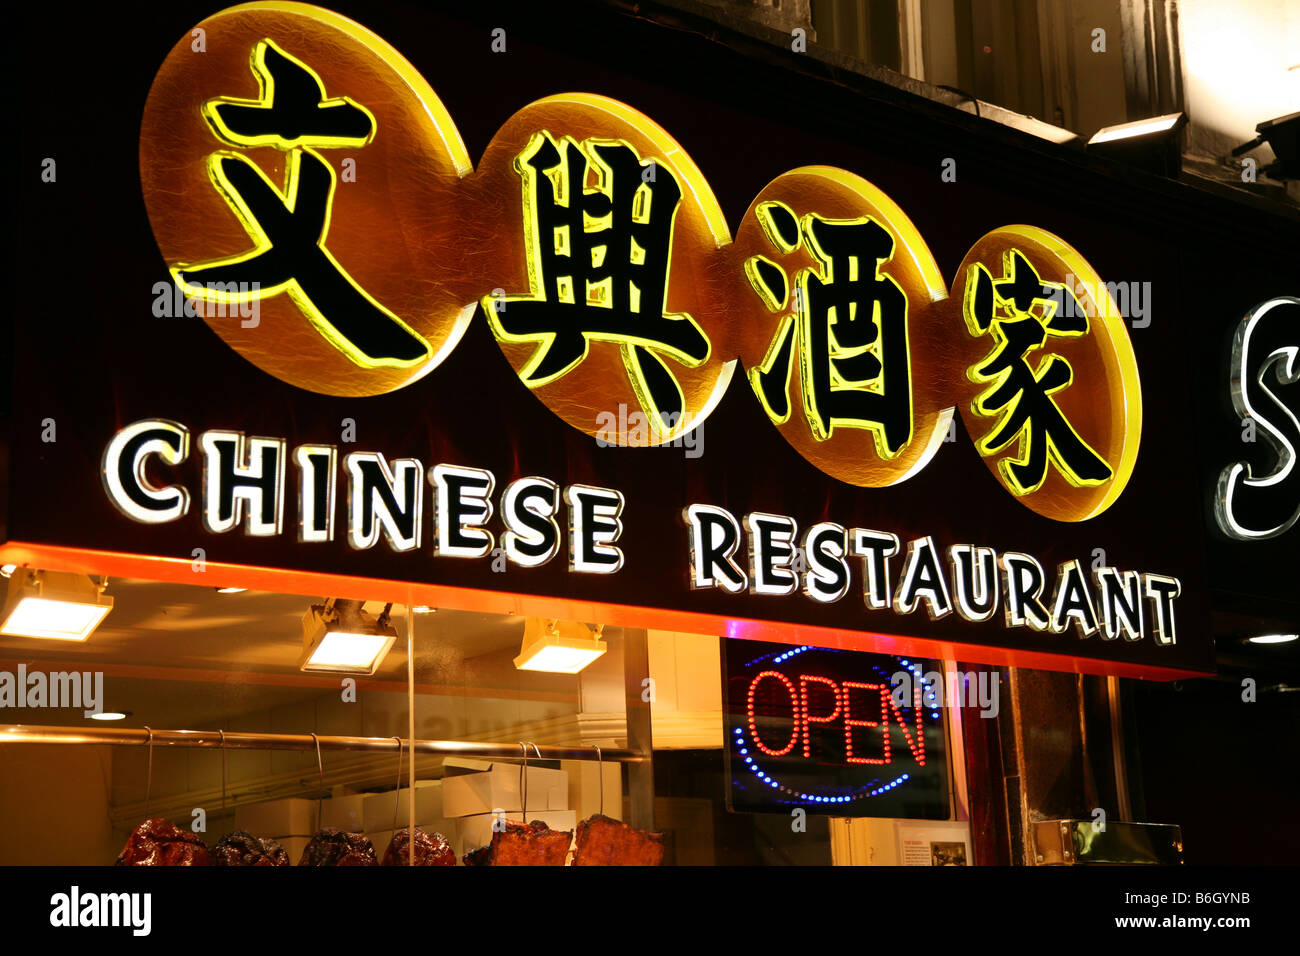 Signs for a Chinese restaurant in China town London - Stock Image